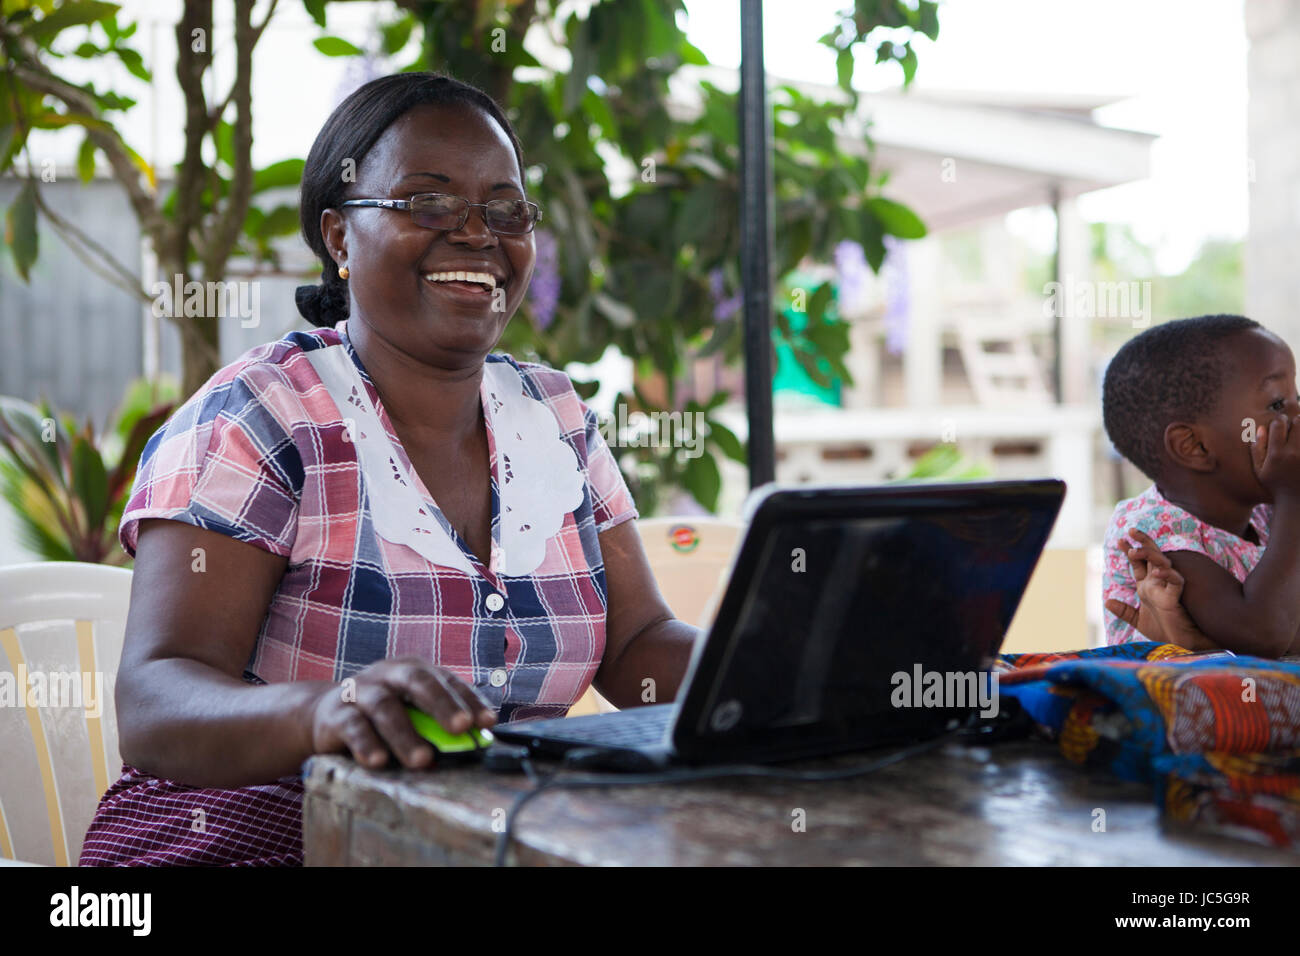 A female small business owner on her computer, Tanzania, Africa - Stock Image